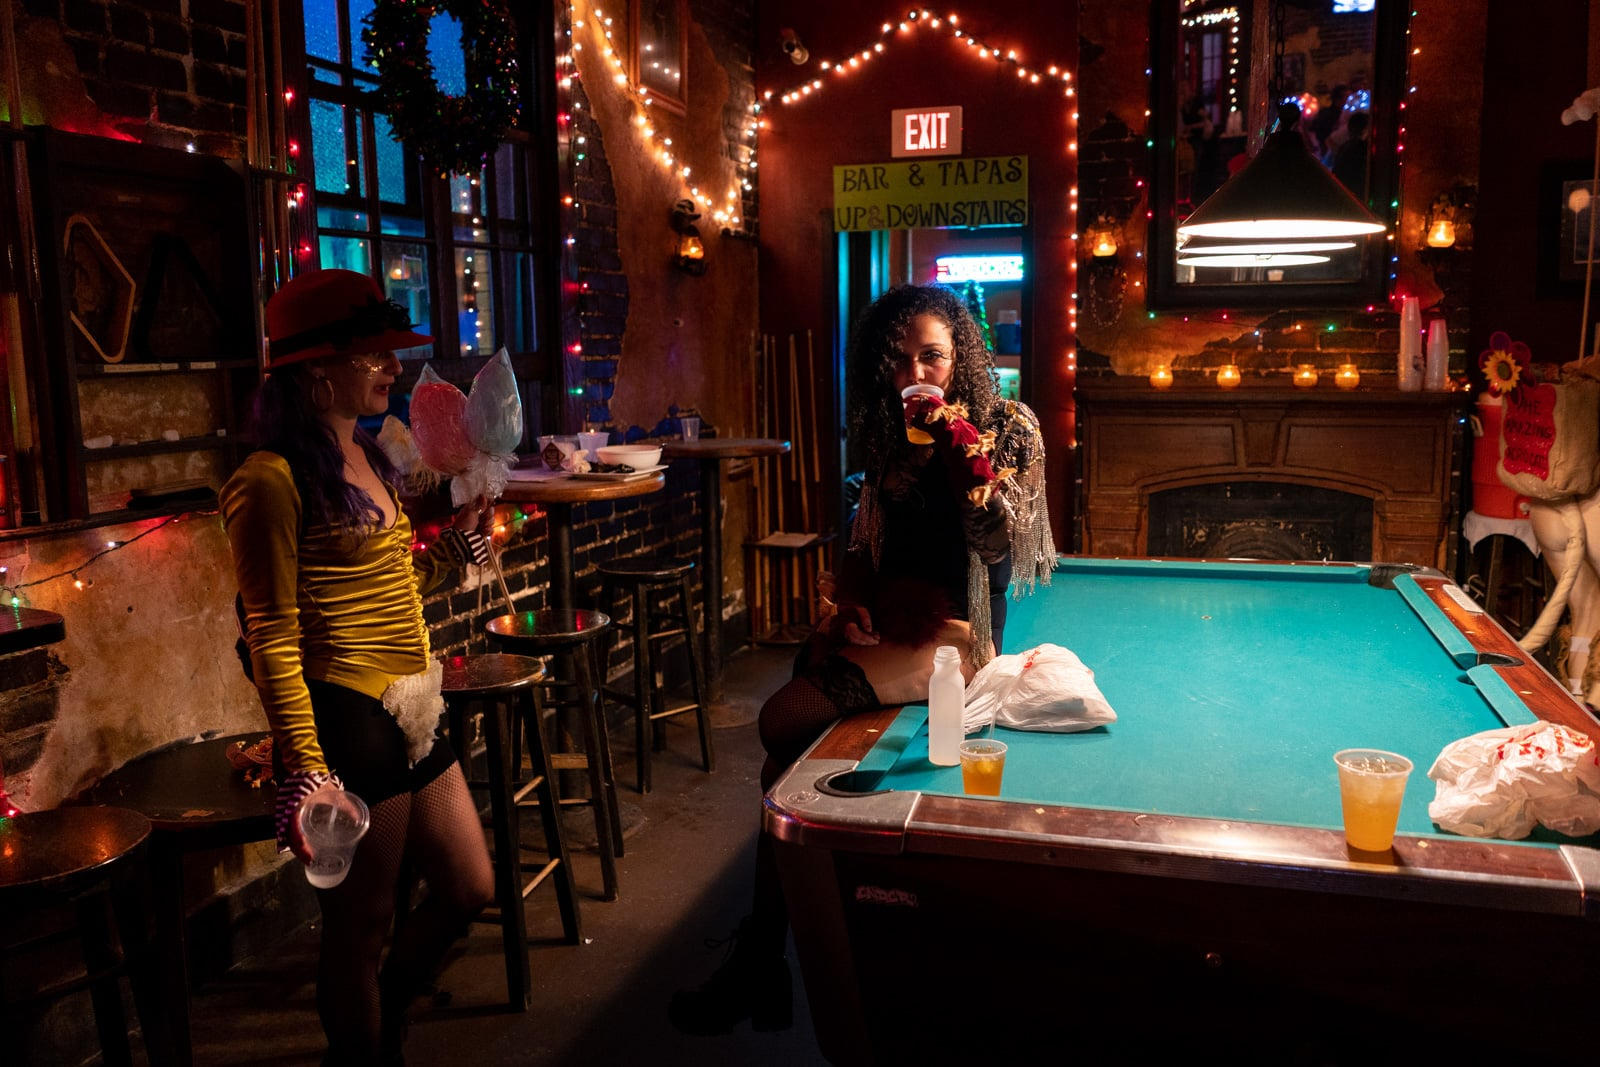 Girls drinking on the pool table at Mimi's in the Marigny in New Orleans